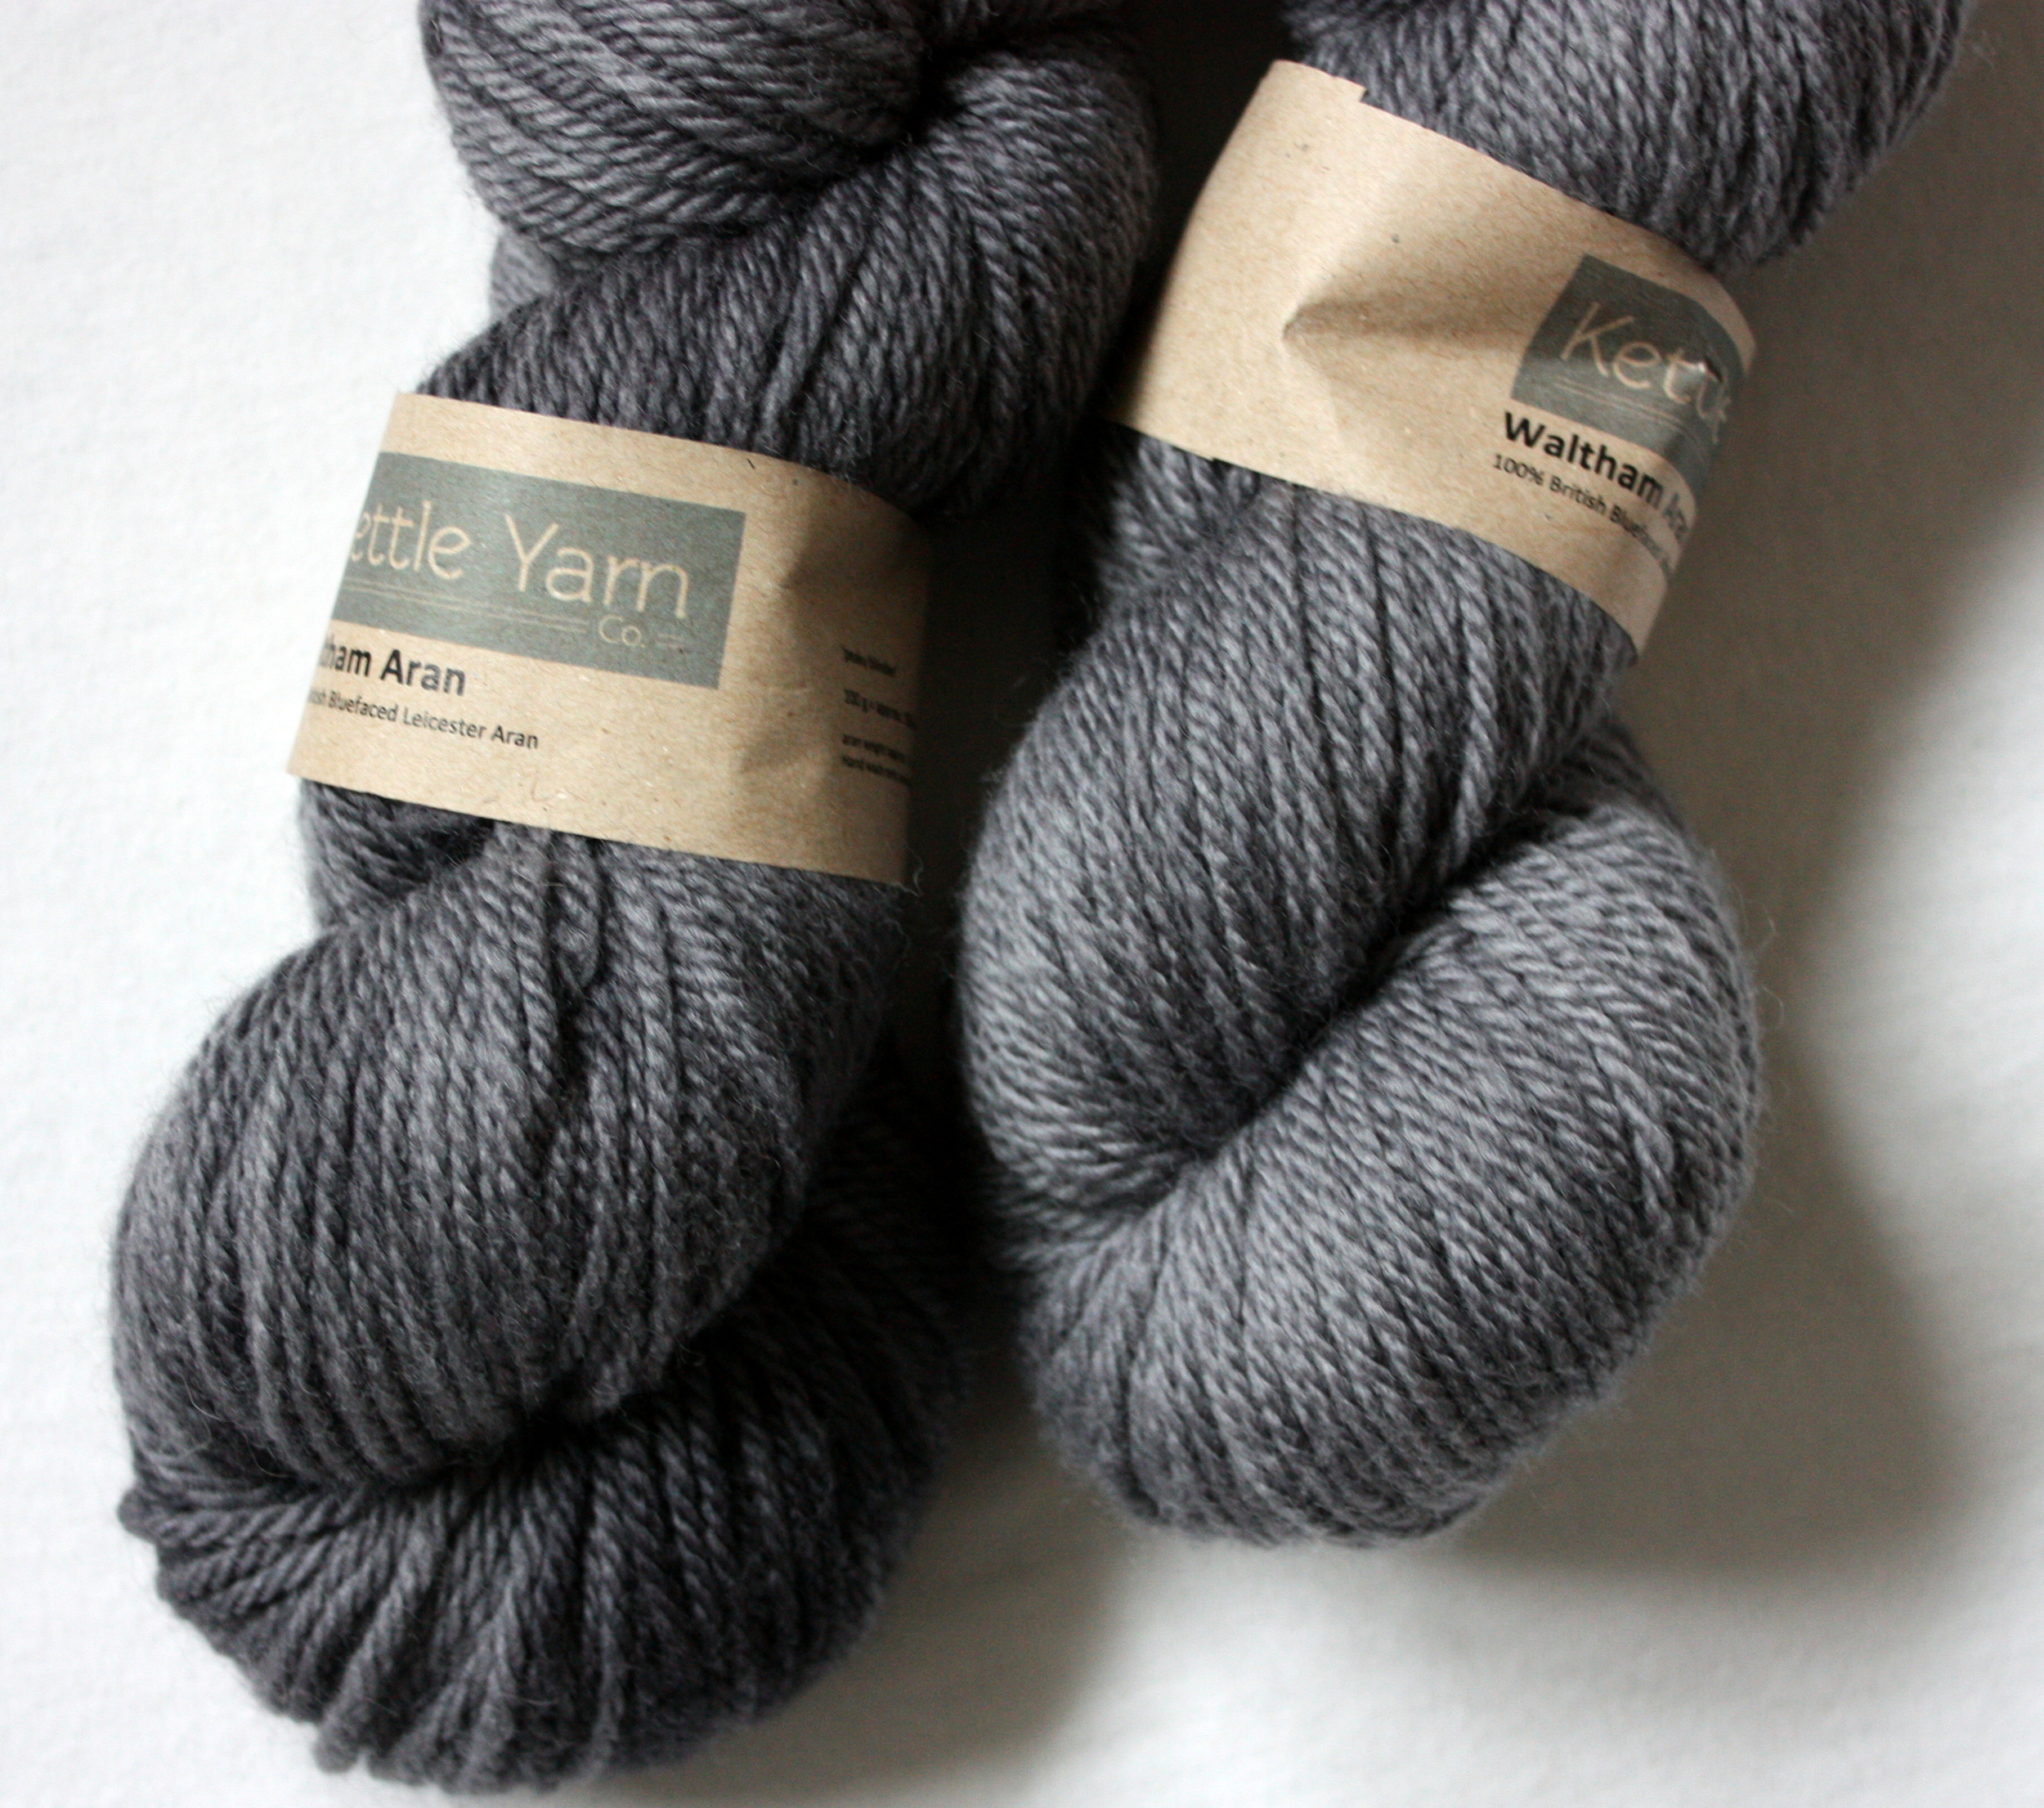 Kettle Yarn Co Waltham Aran